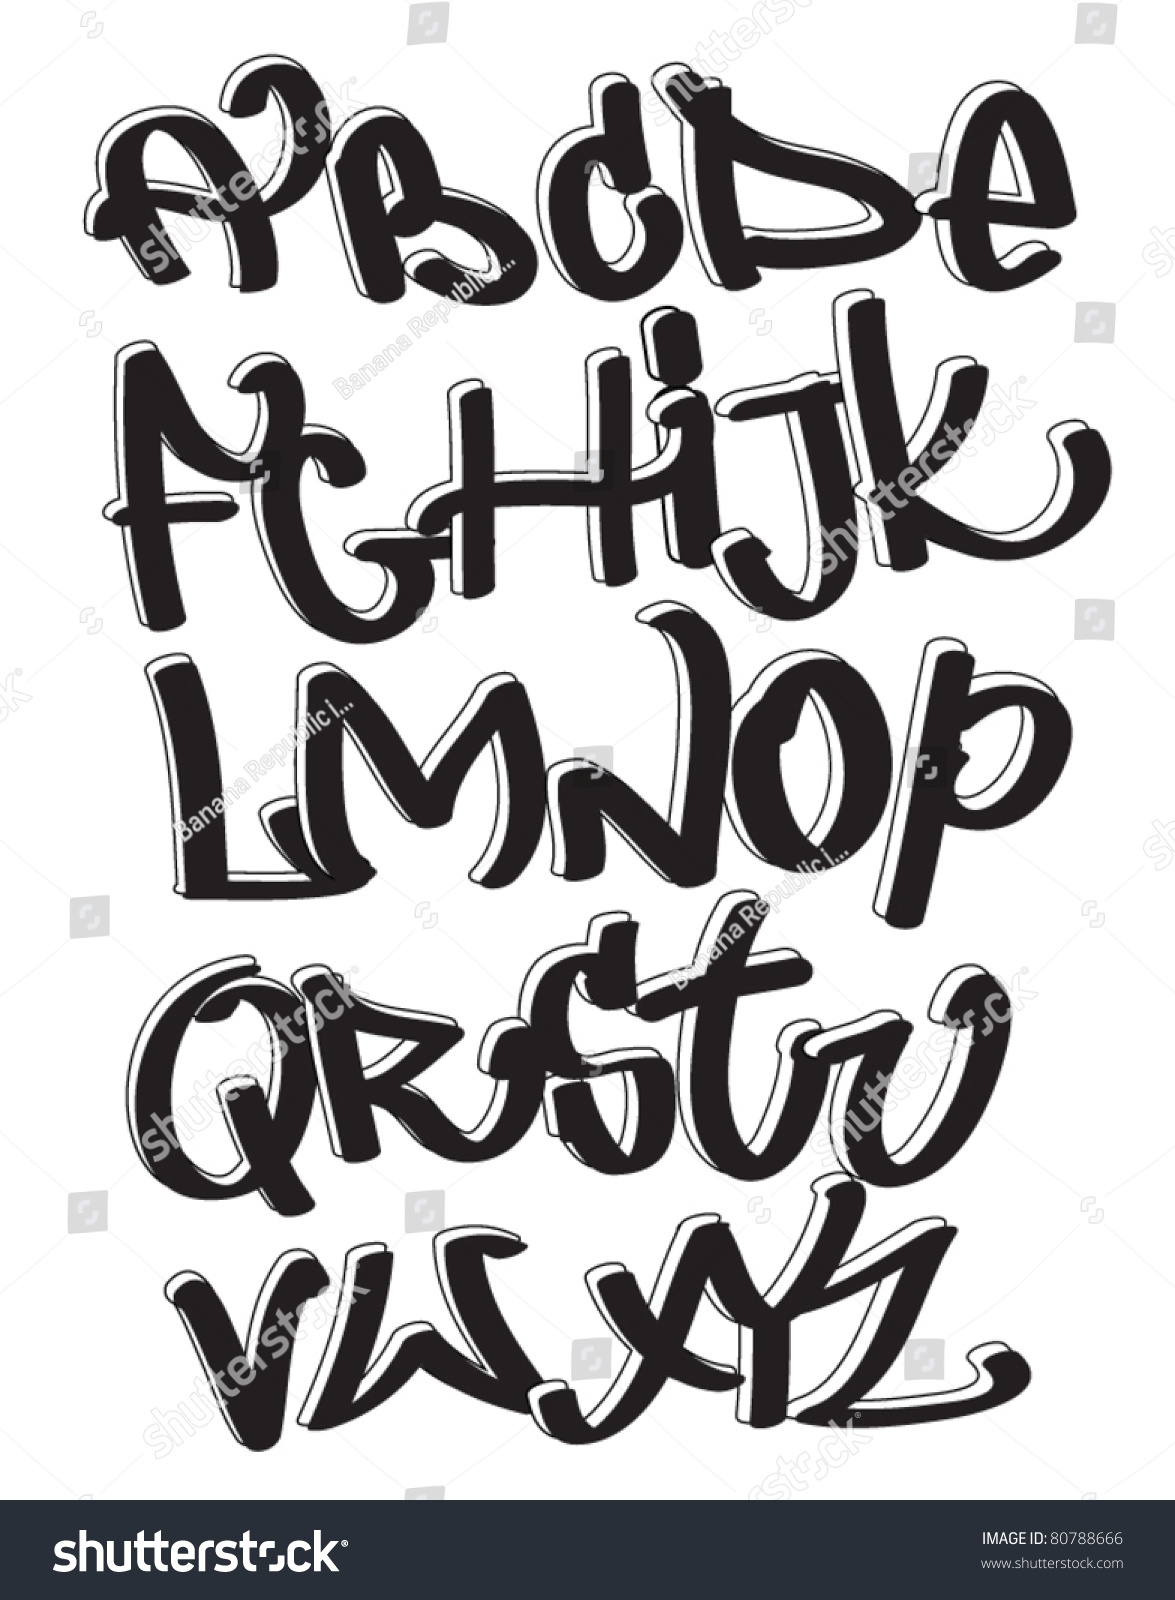 https://image.shutterstock.com/z/stock-vector-graffiti-font-alphabet-urban-art-of-abc-80788666.jpg